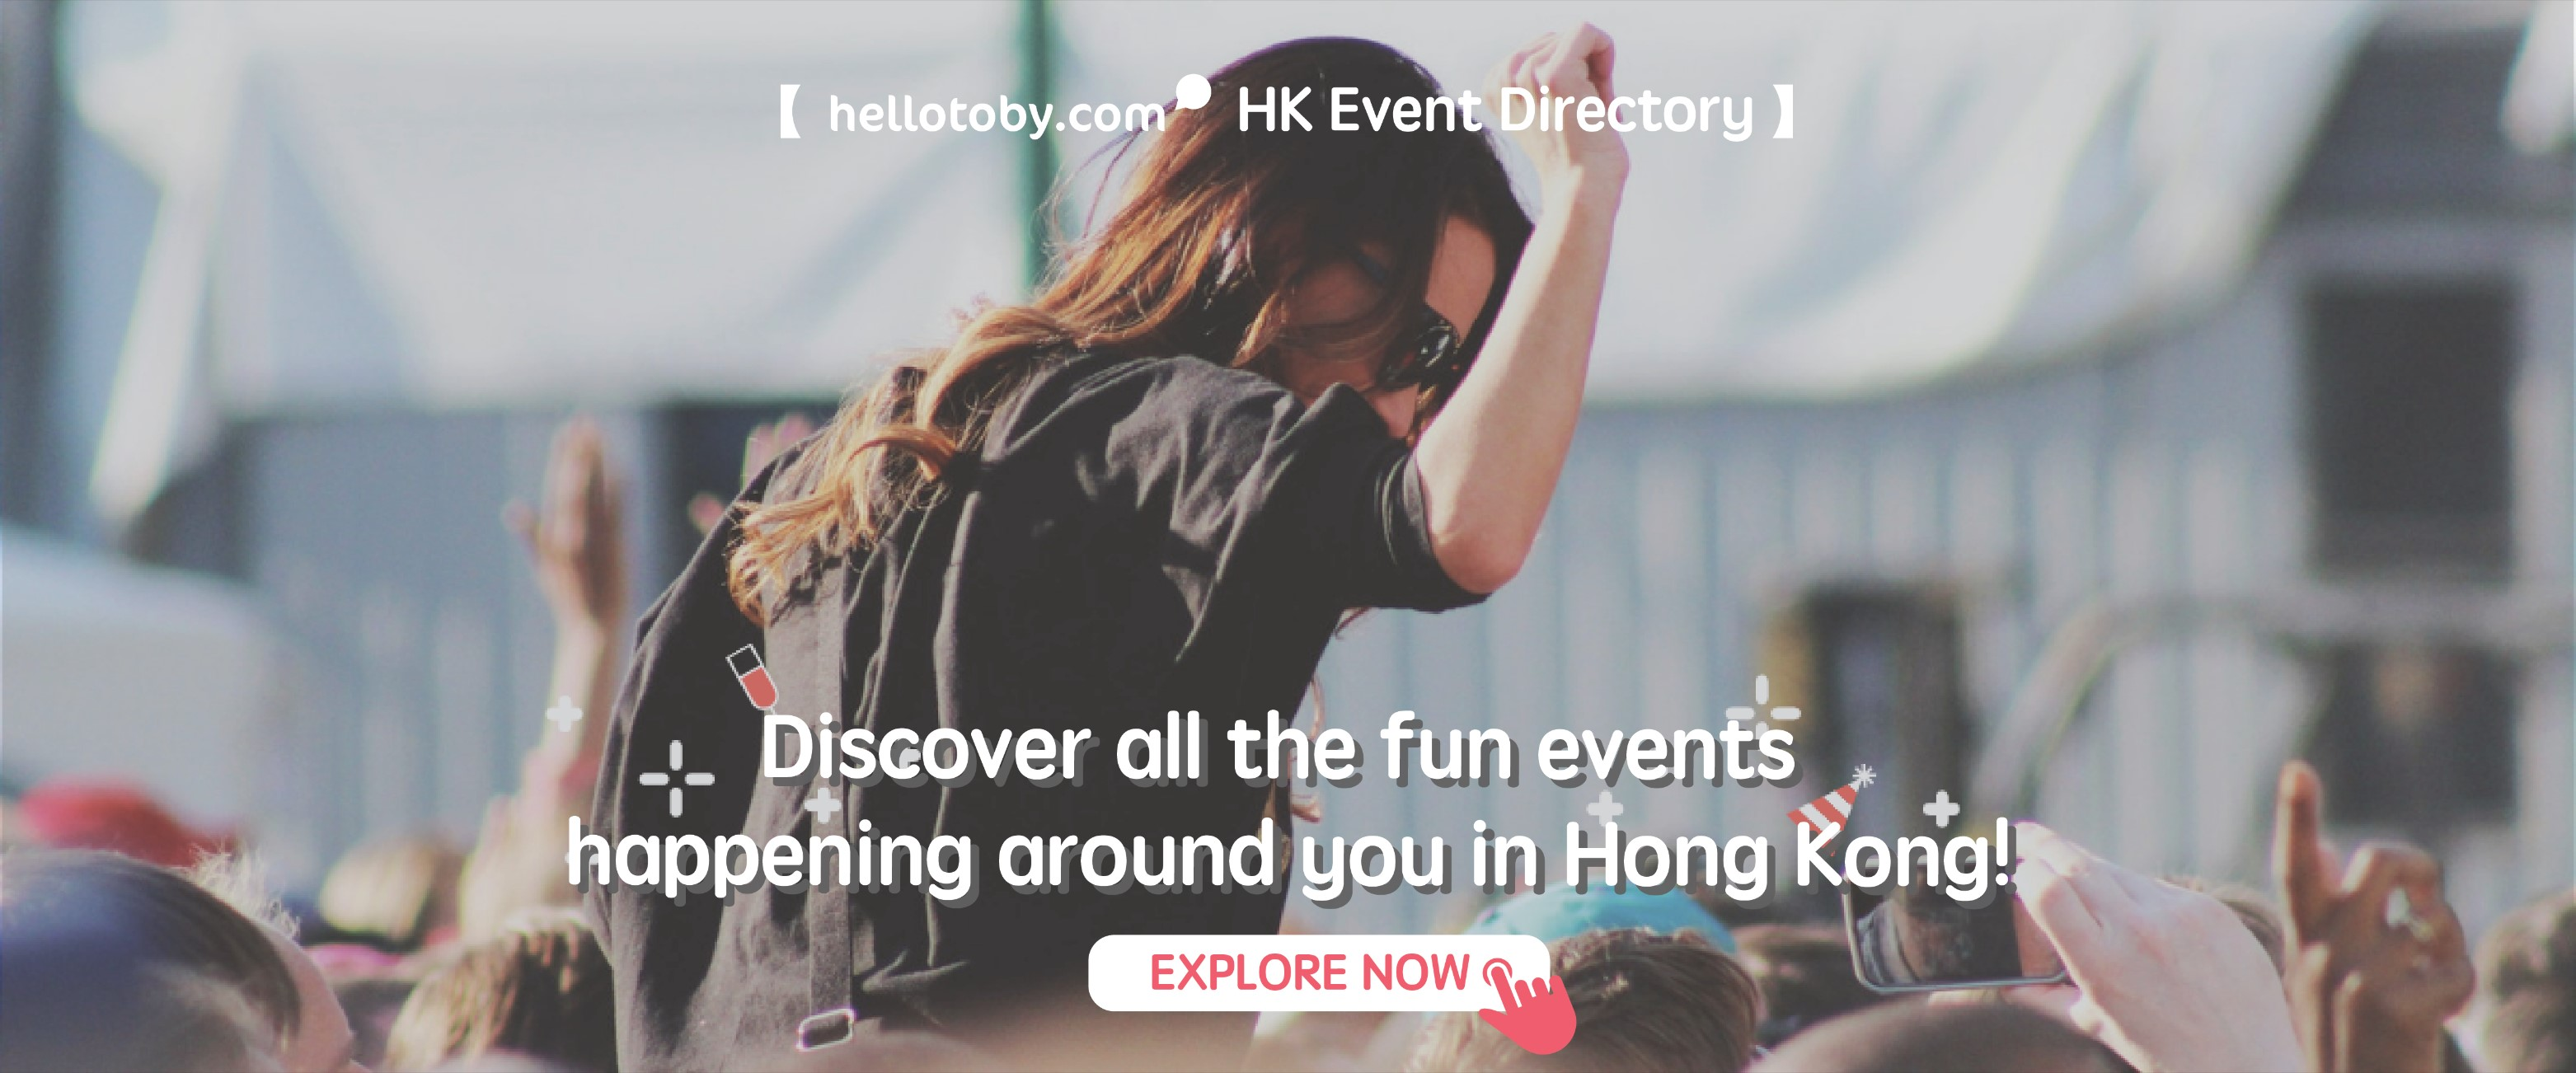 HelloToby Event Page - Explore Things to Do in Hong Kong!